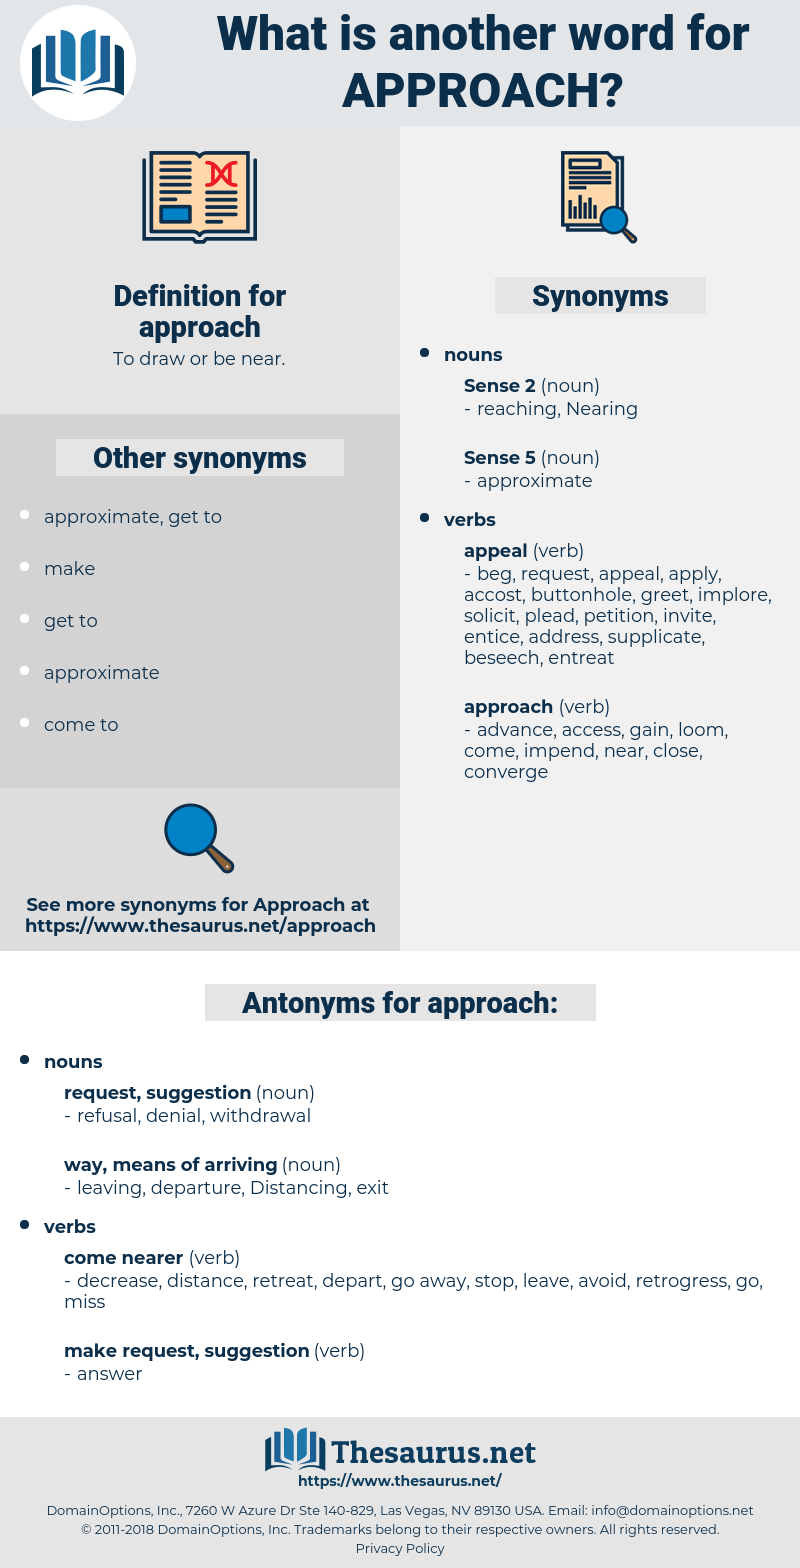 approach, synonym approach, another word for approach, words like approach, thesaurus approach